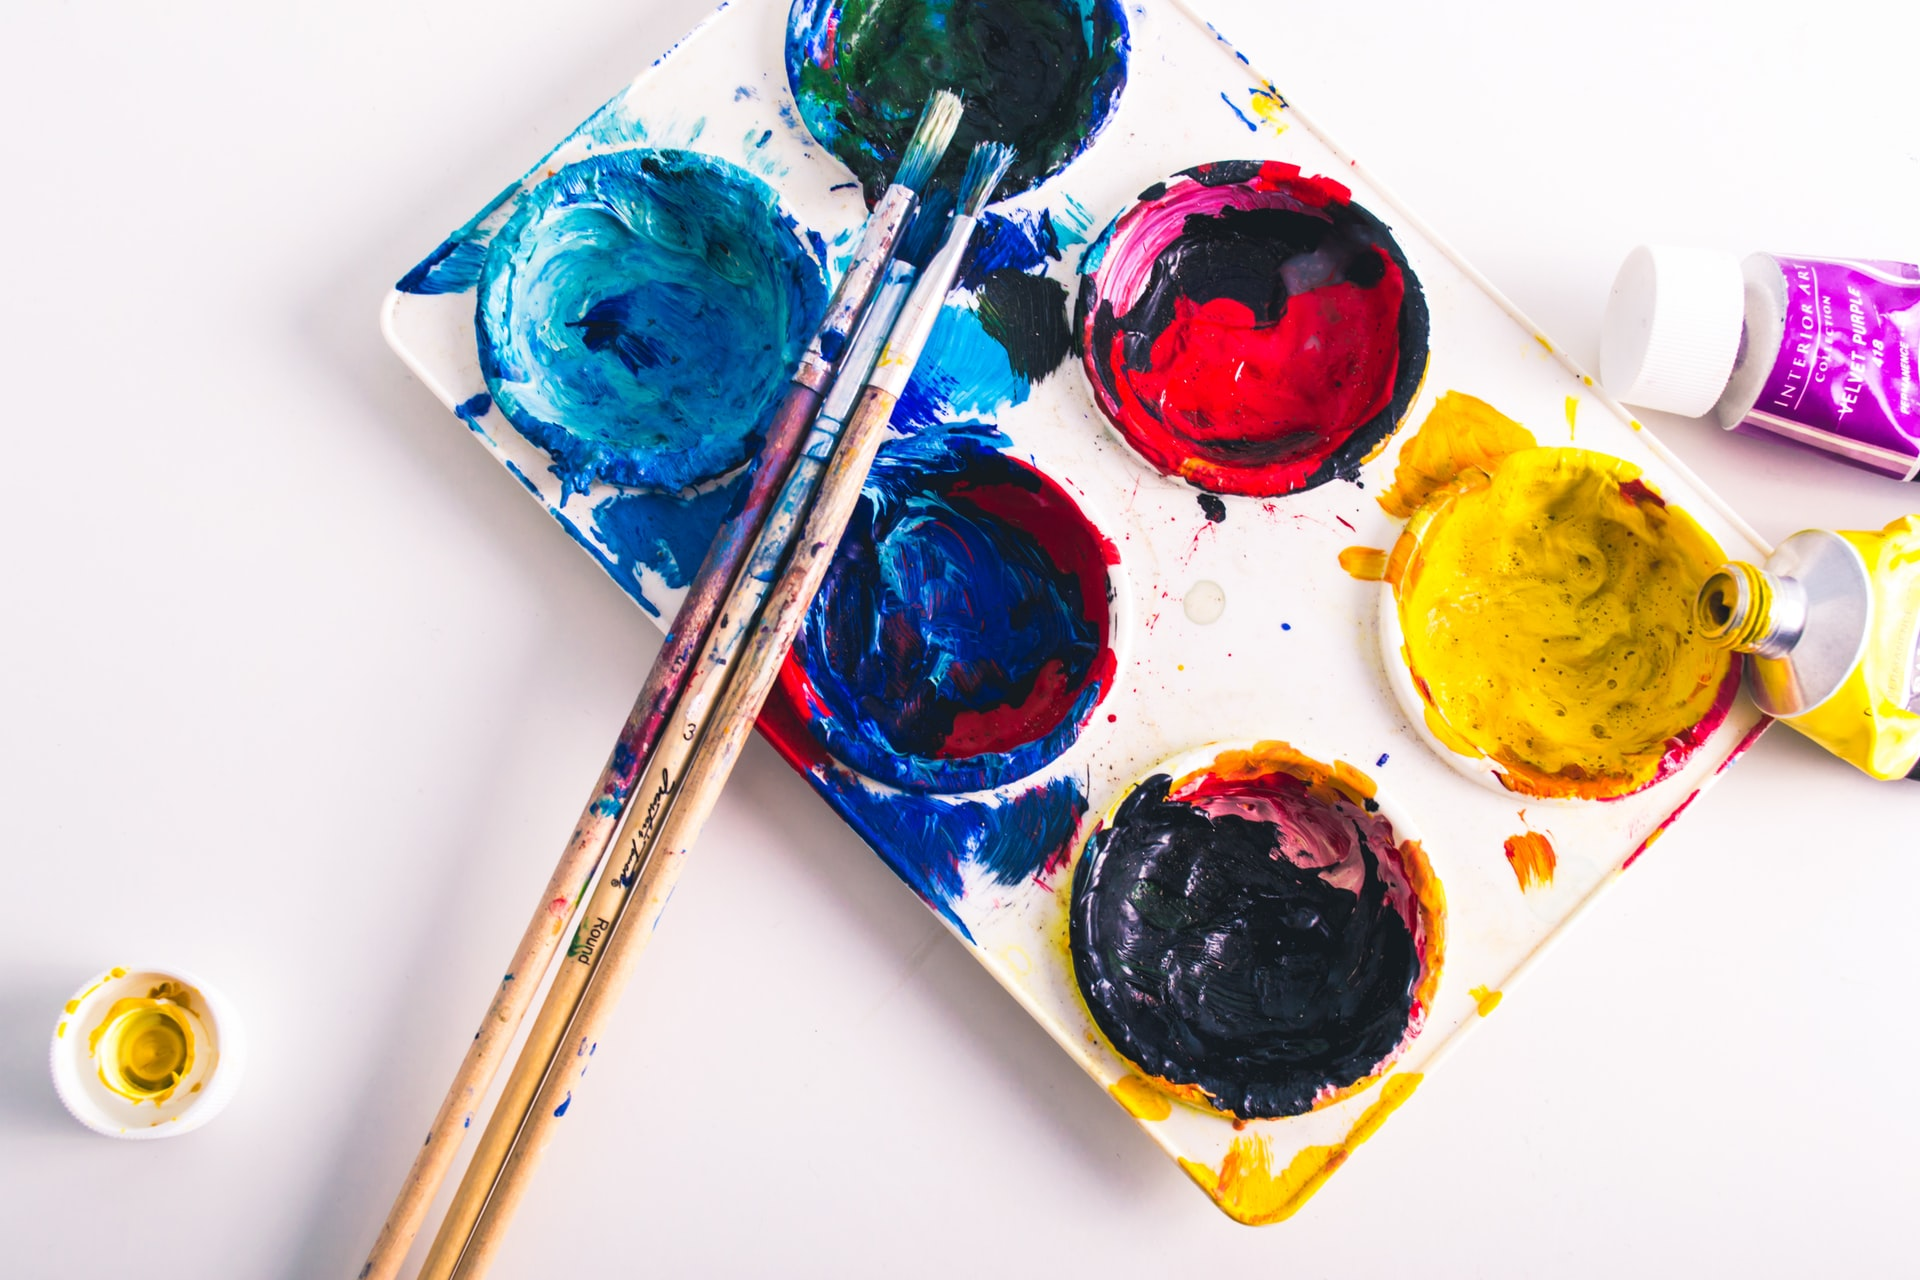 Stock photo of a paint palette with six colours: yellow, blue, navy, green, red, and brown. A paint brush lies across the palette and there's smudge of paint across the white surface.